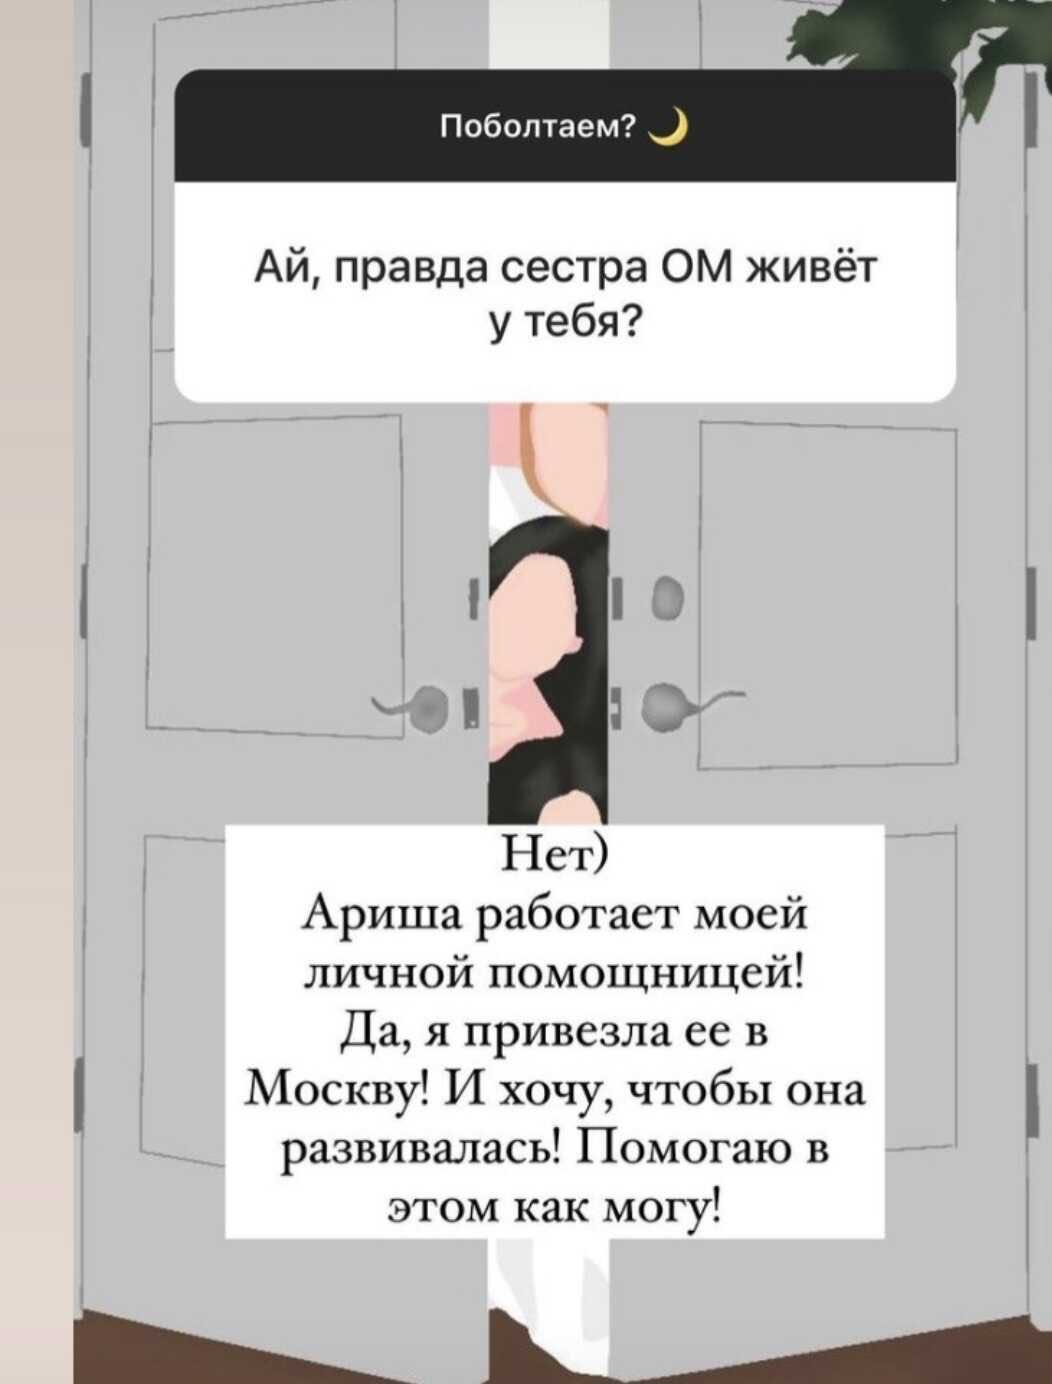 Isa Dolmatova admitted that Oleg's sister Miami works at her home